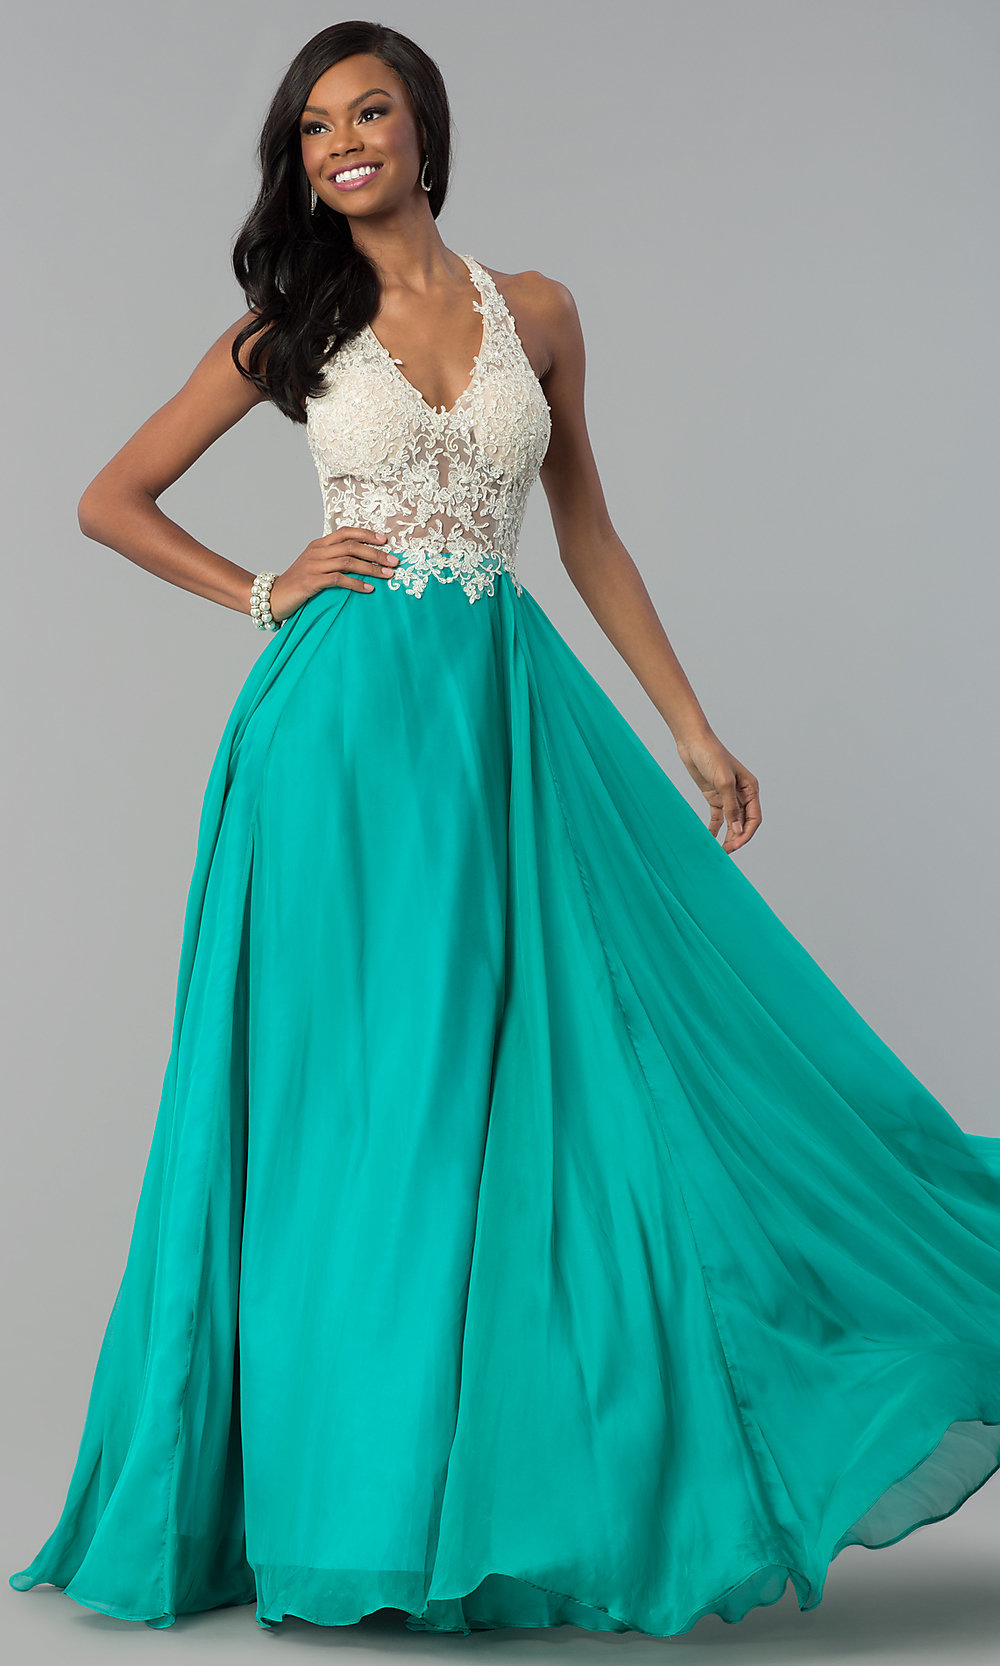 Delighted Prom Dresses In Greenville Nc Pictures Inspiration ...